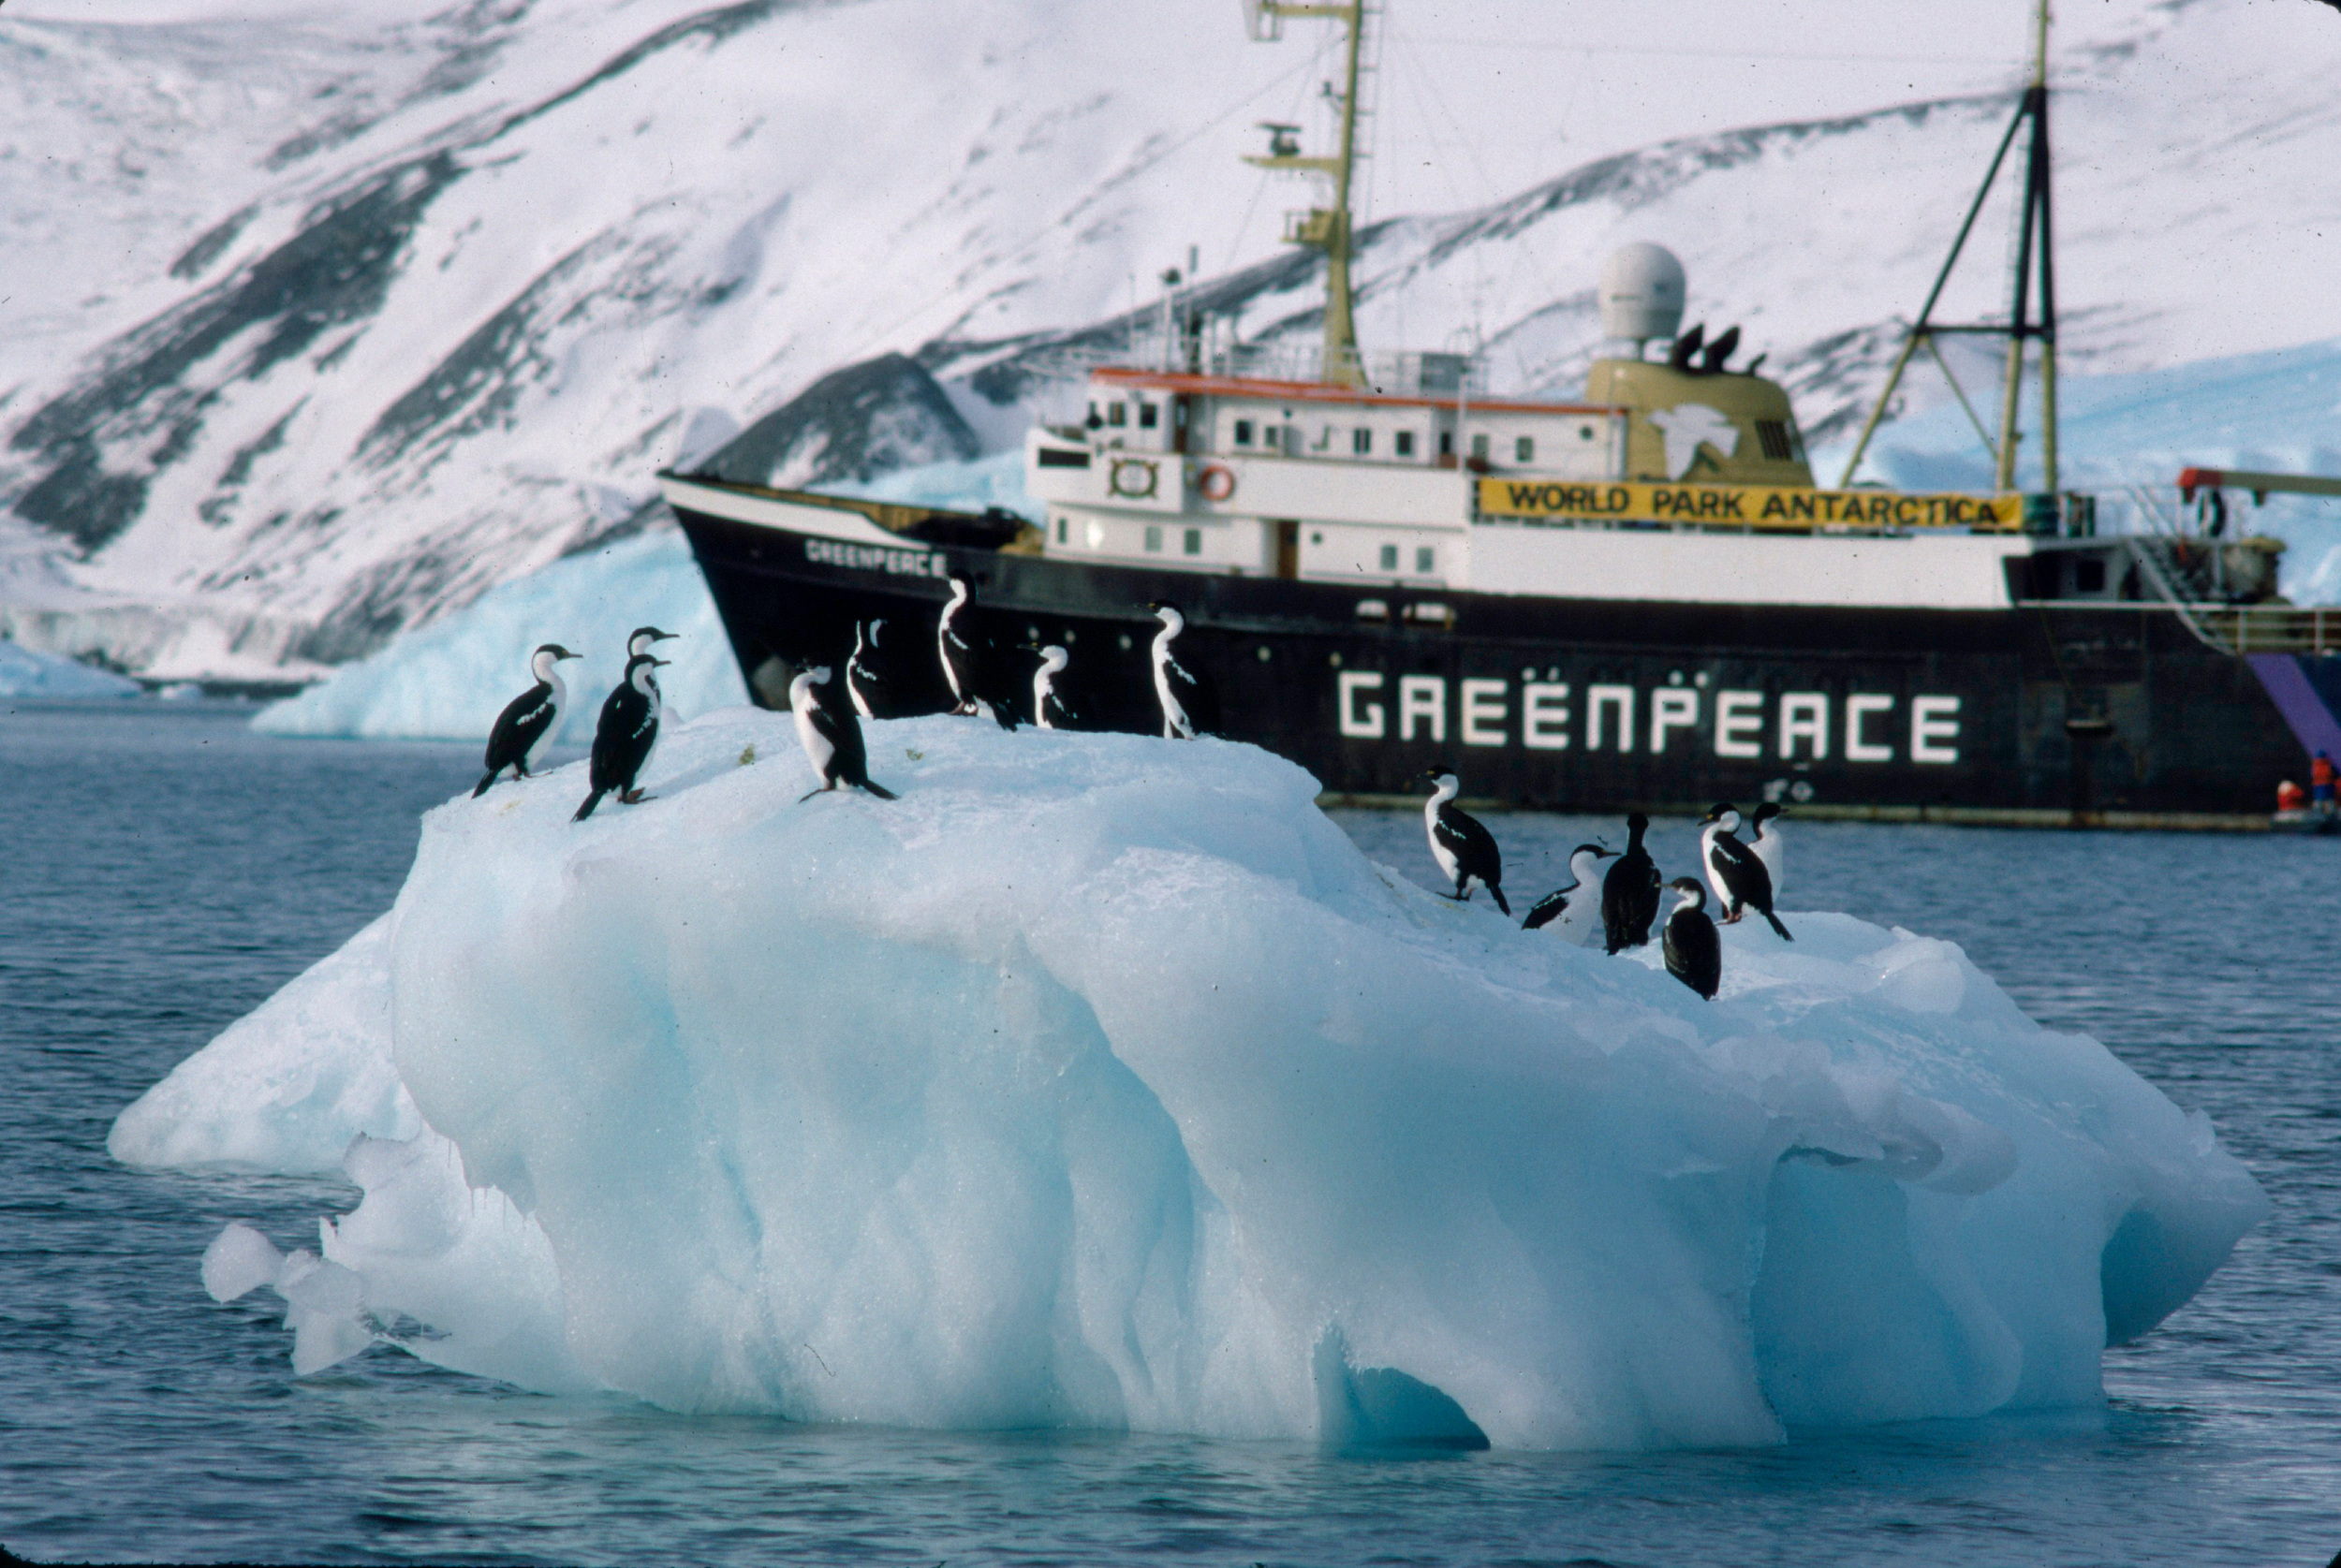 A ship in an icy landscape with penguins in front of it on an iceberg